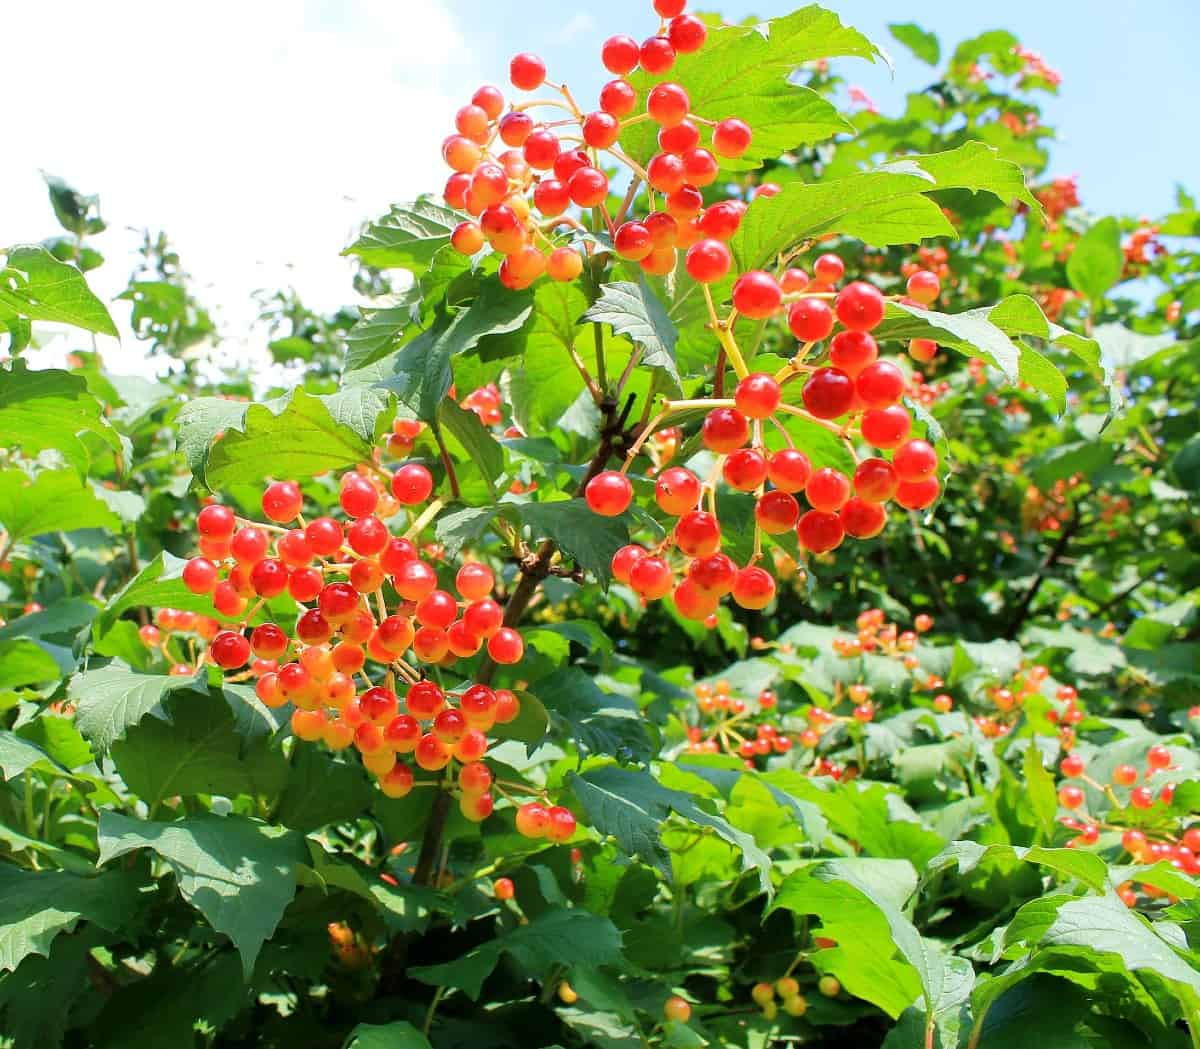 viburnum is a fast grower